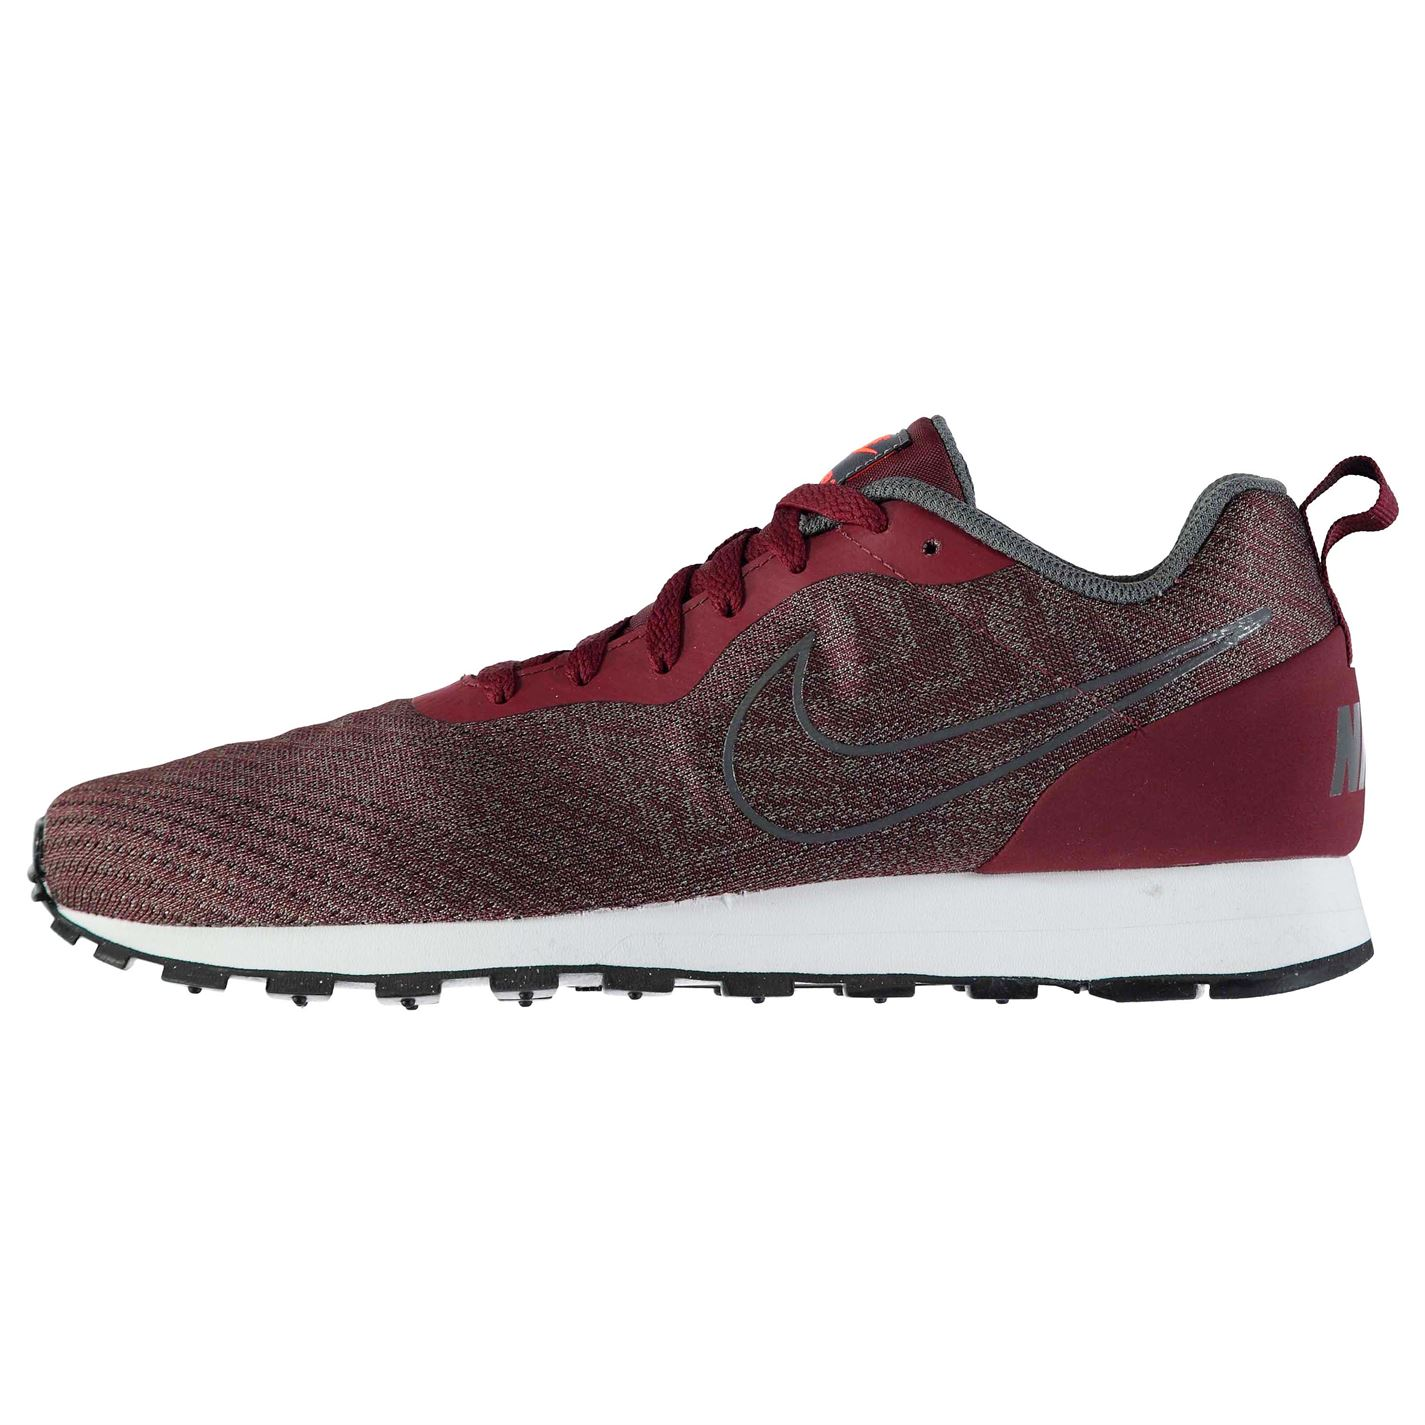 Nike MD Runner 2 Mens Trainers Red Red - Glami.cz 78c45577f6